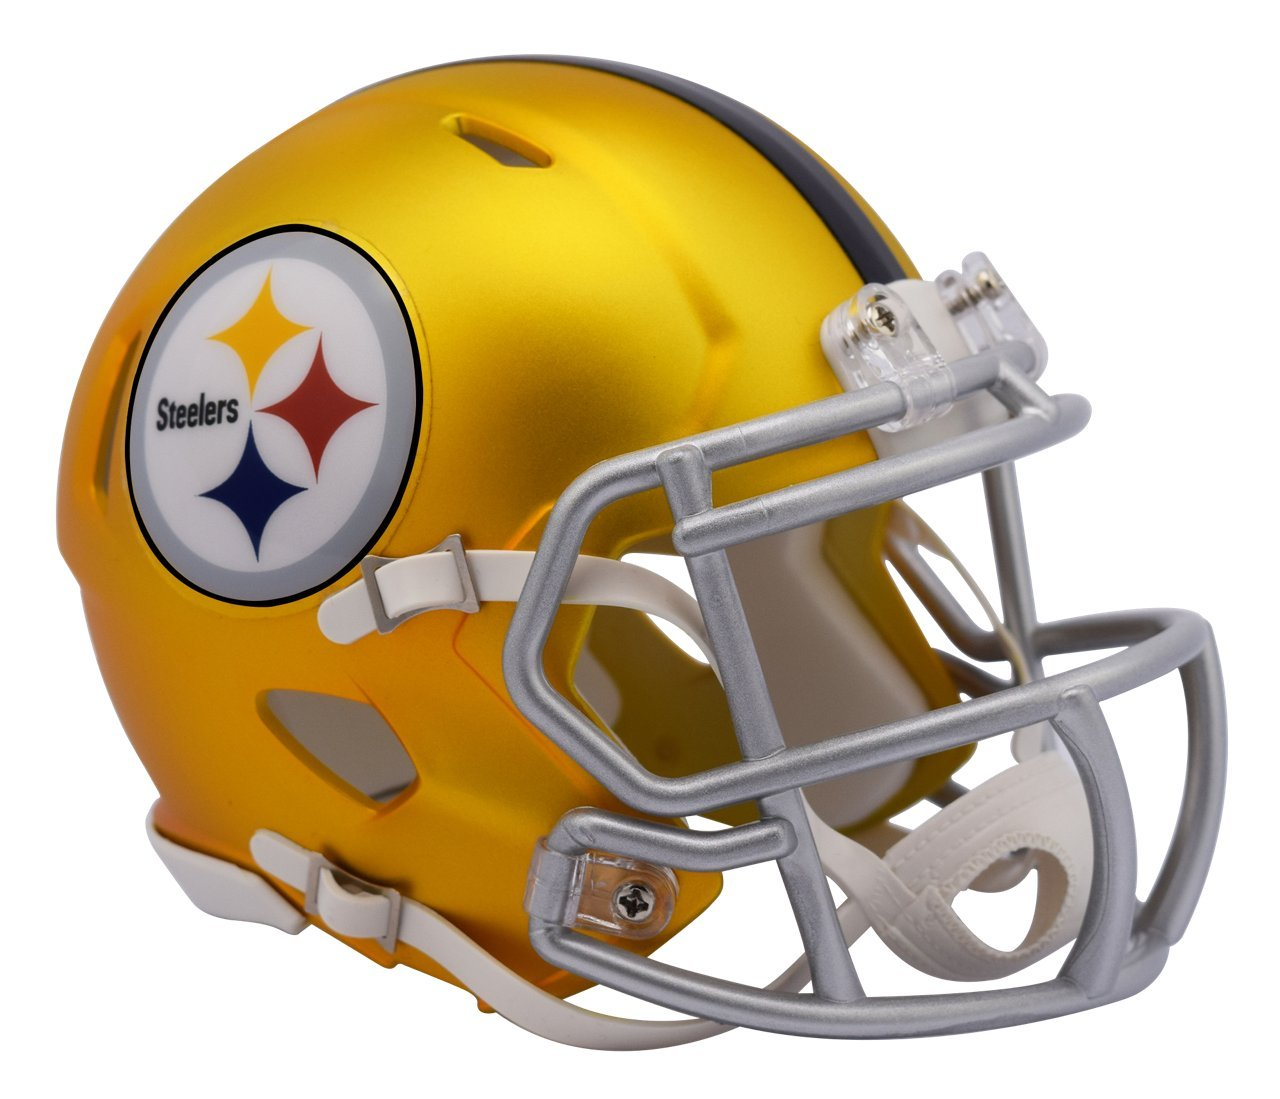 Pittsburgh Steelers - Blaze Alternate Speed Riddell Mini Football Helmet - New in Riddell Box